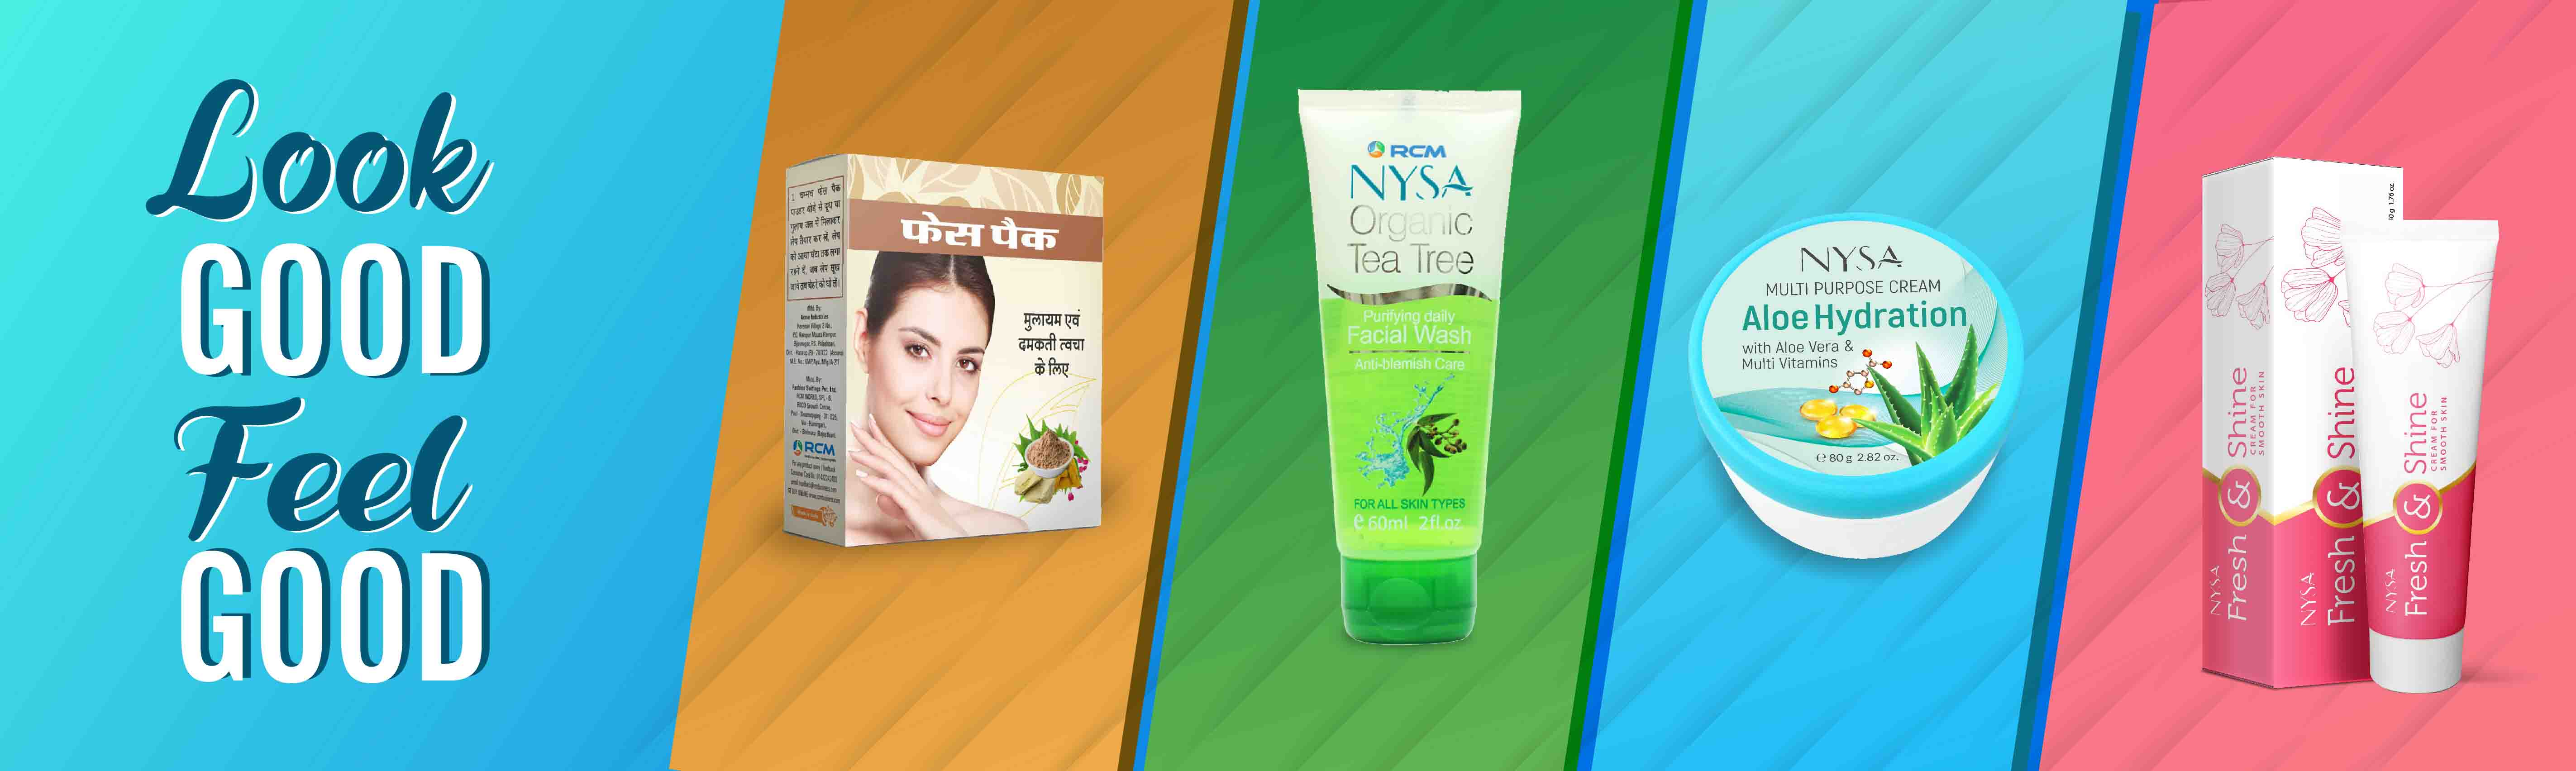 PERSONAL CARE, Face Care, Face Pack